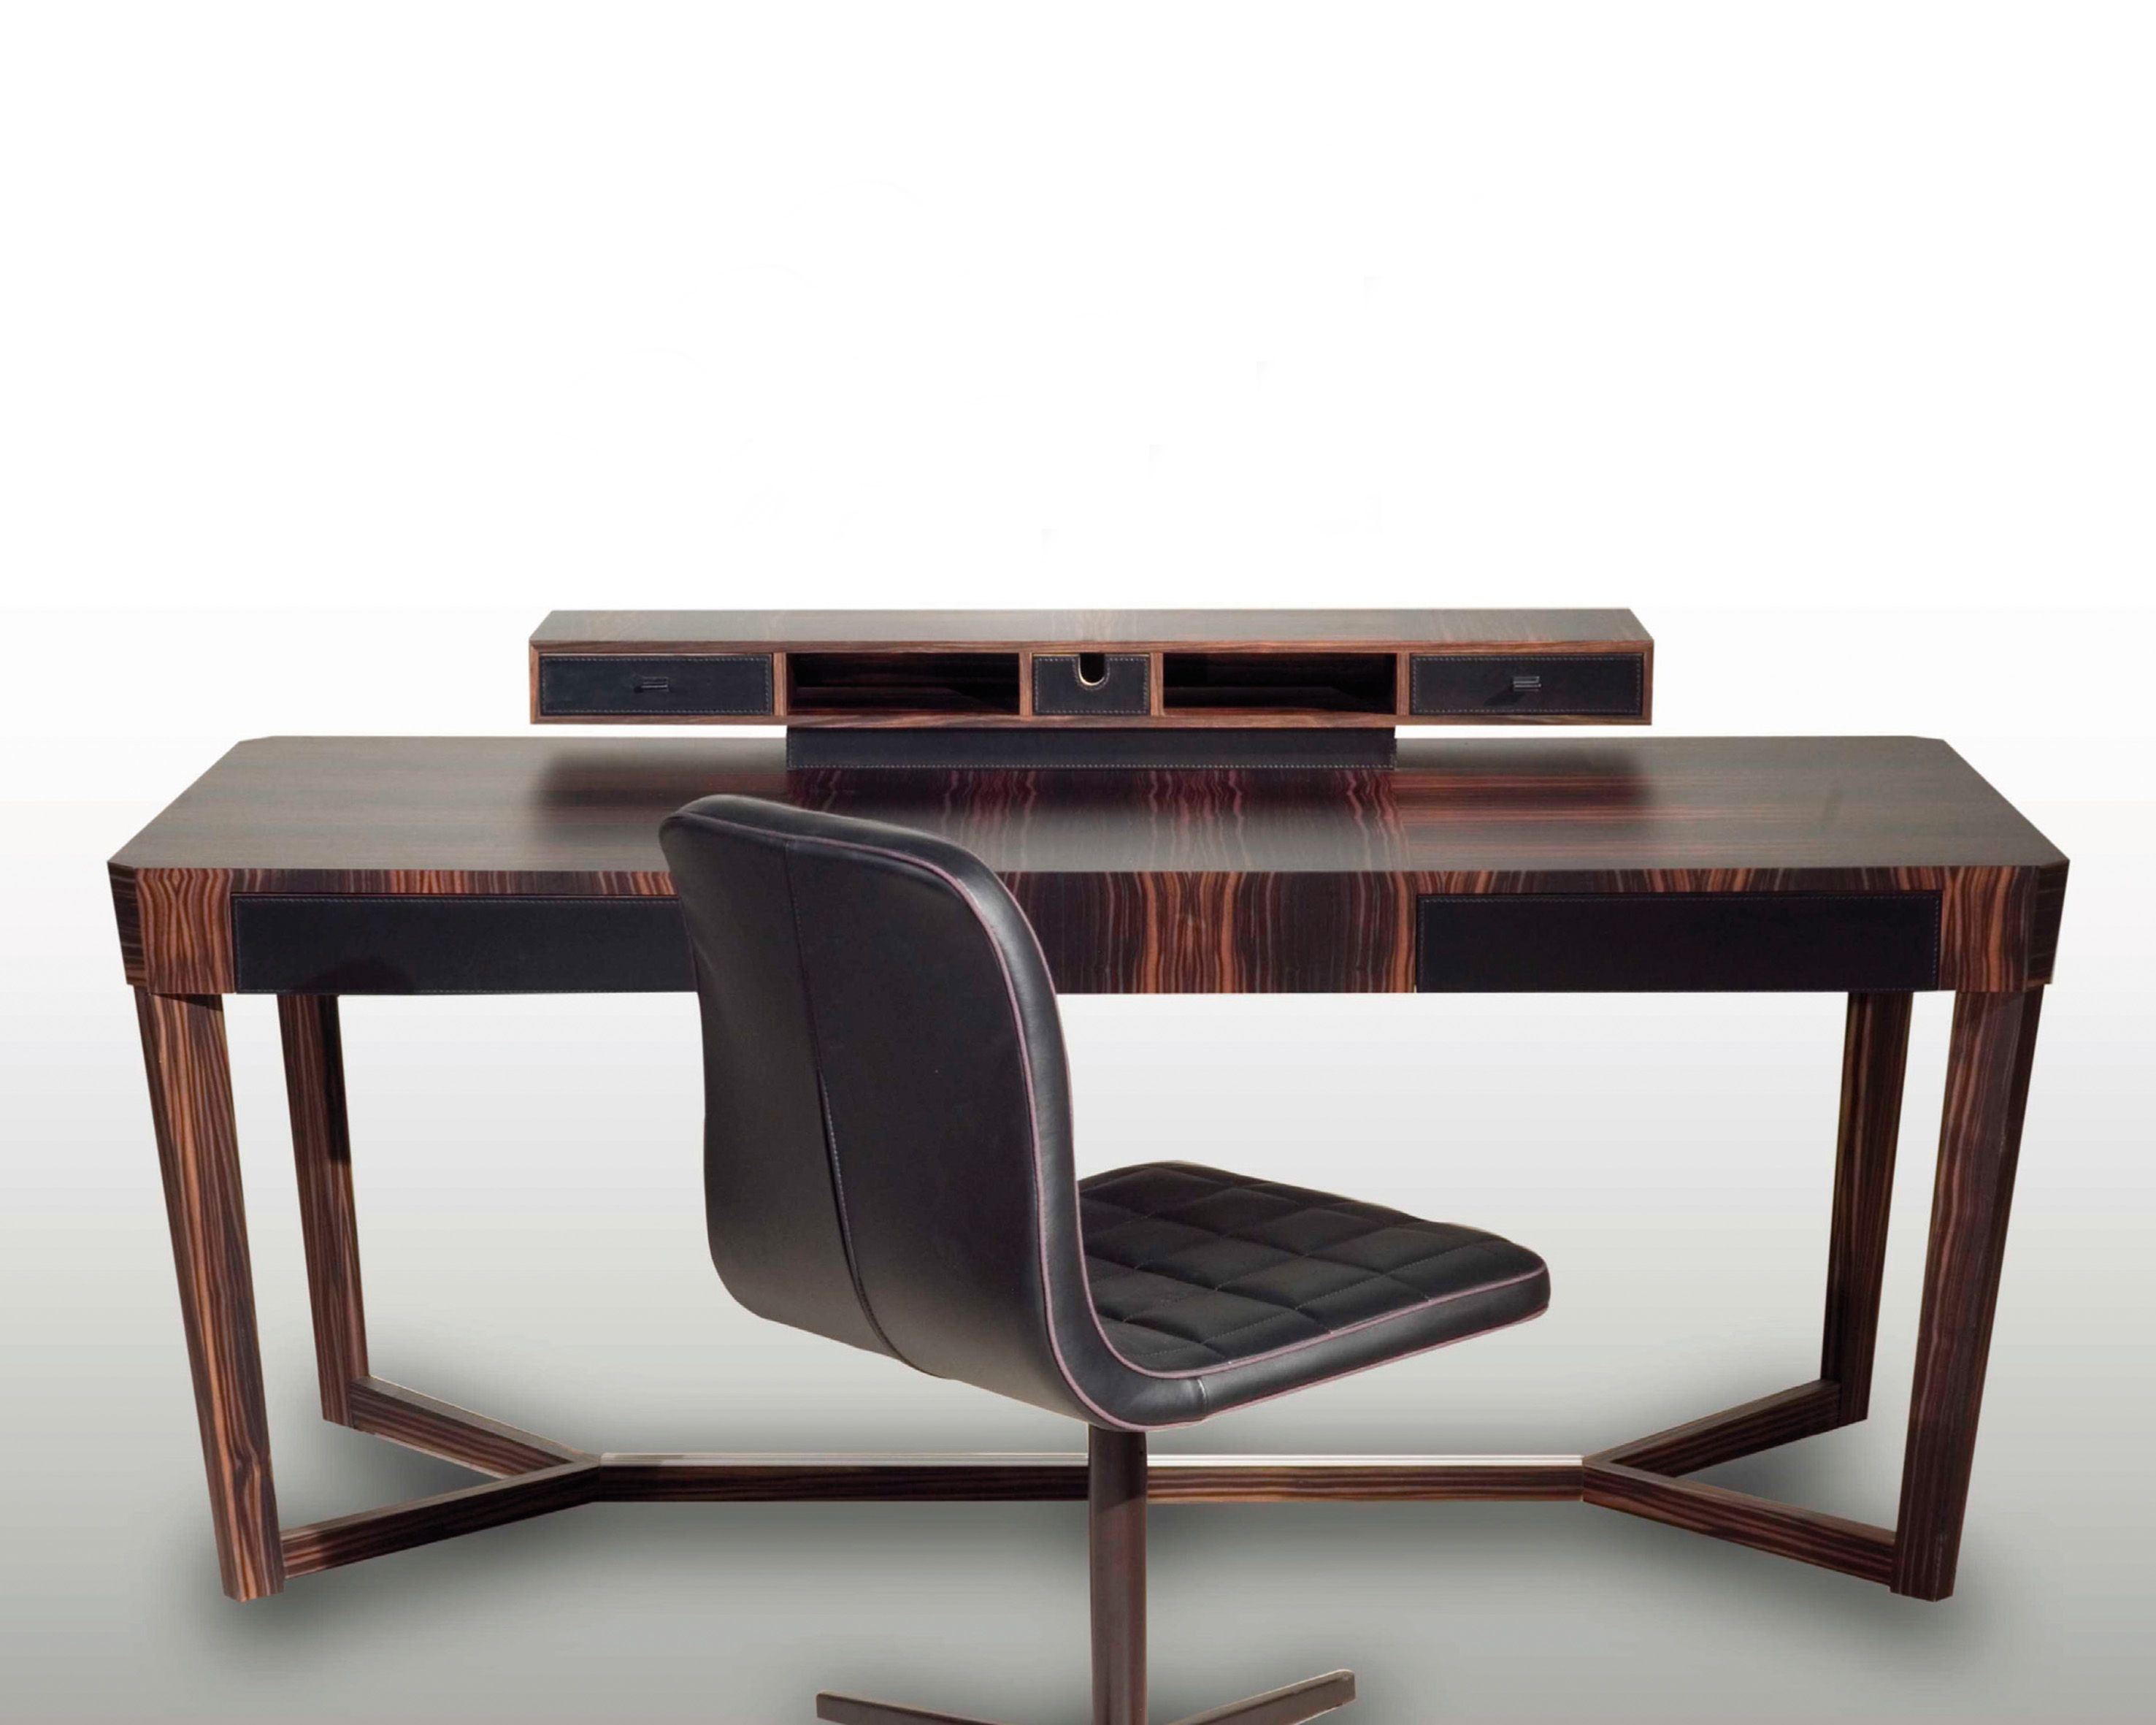 Hand-crafted by Italian artisans, ARPHA (makers of this sleek desk ...